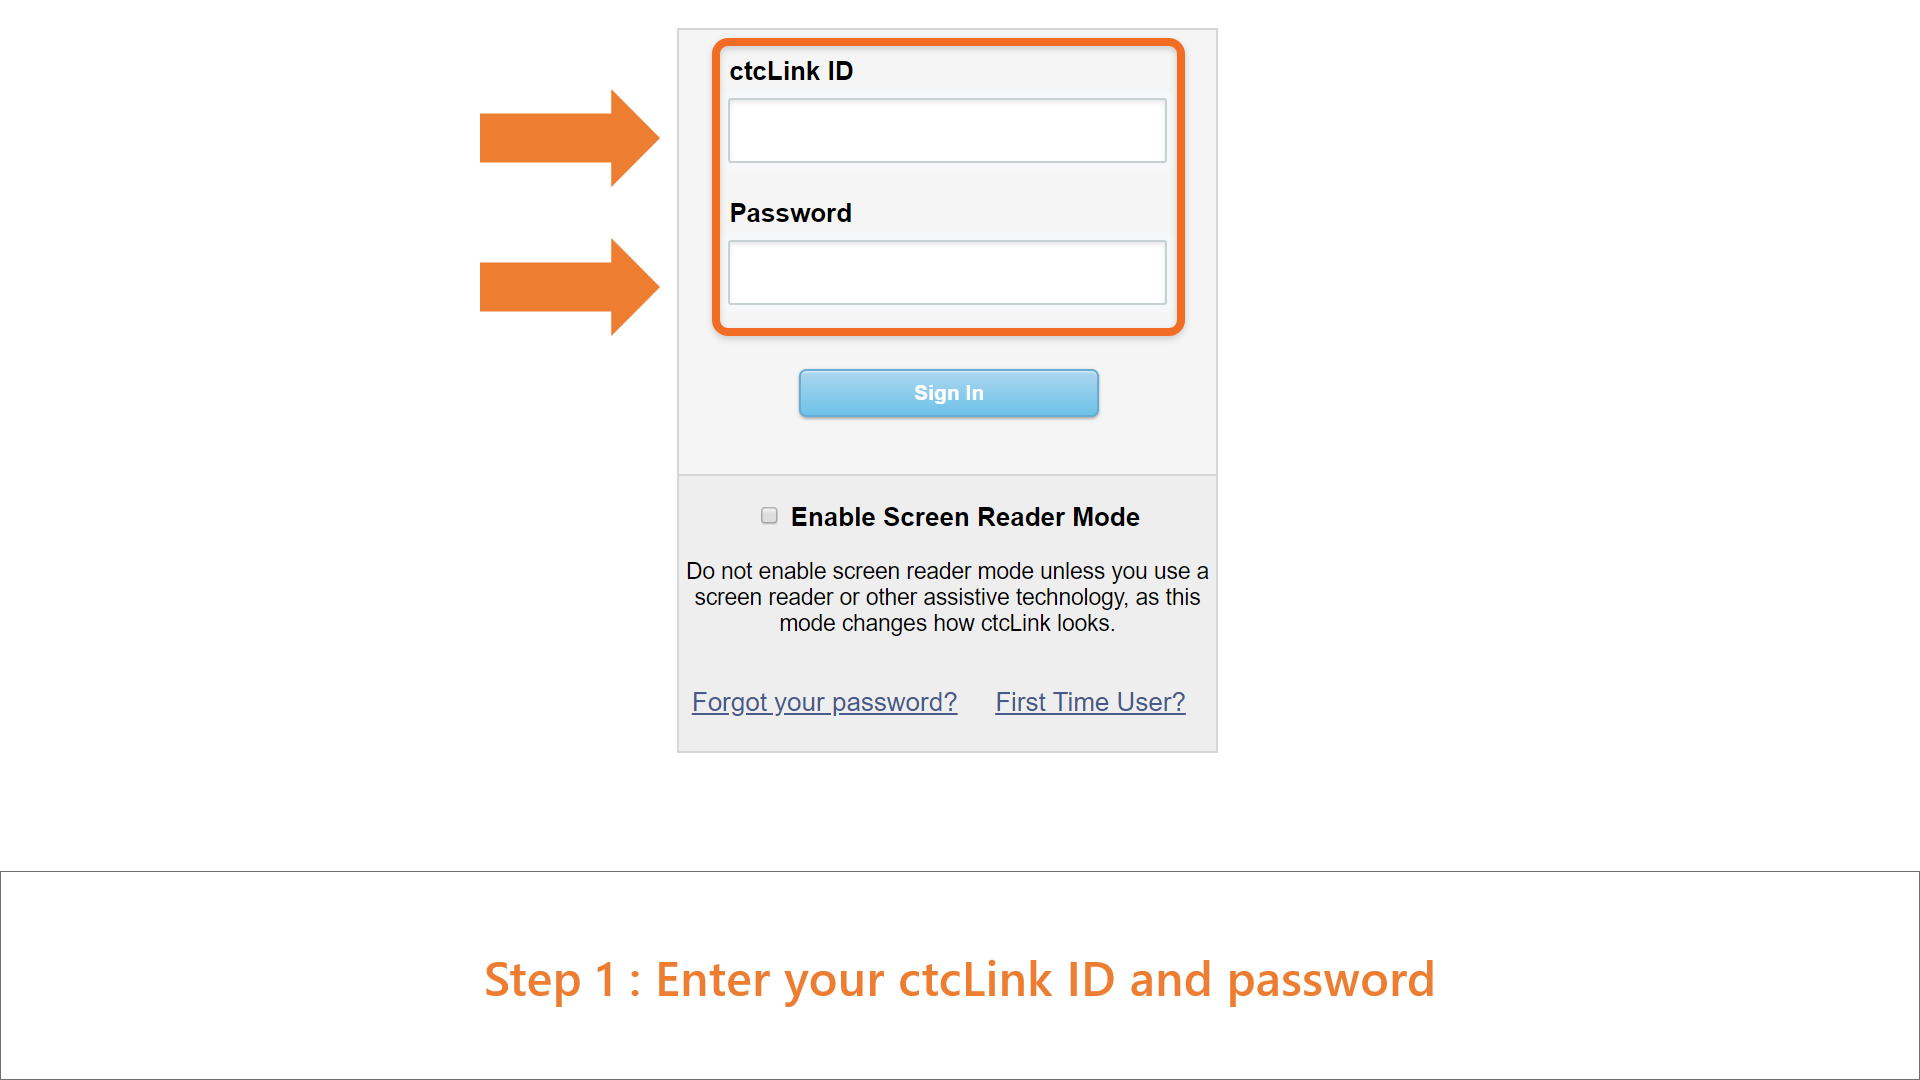 Step 1: On the ctc Link sign in page, enter your ctcLink ID and password.